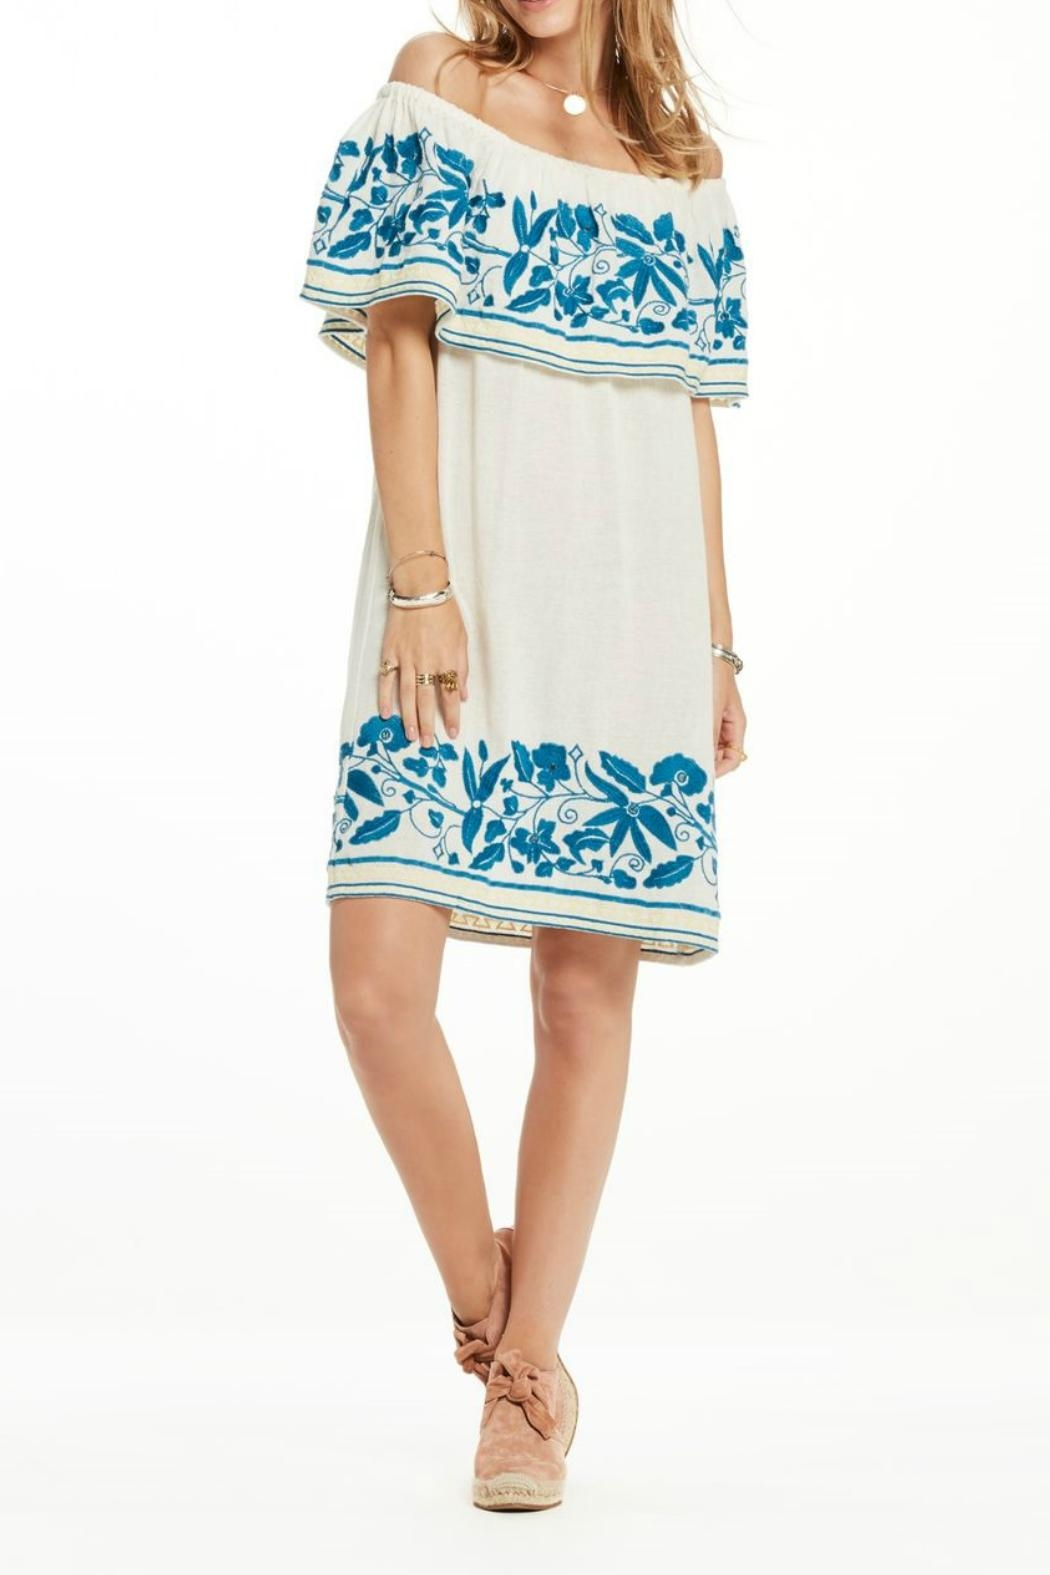 90edf6000dee Maison Scotch Off Shoulder Dress from Canada by Tea Leaf Boutique ...